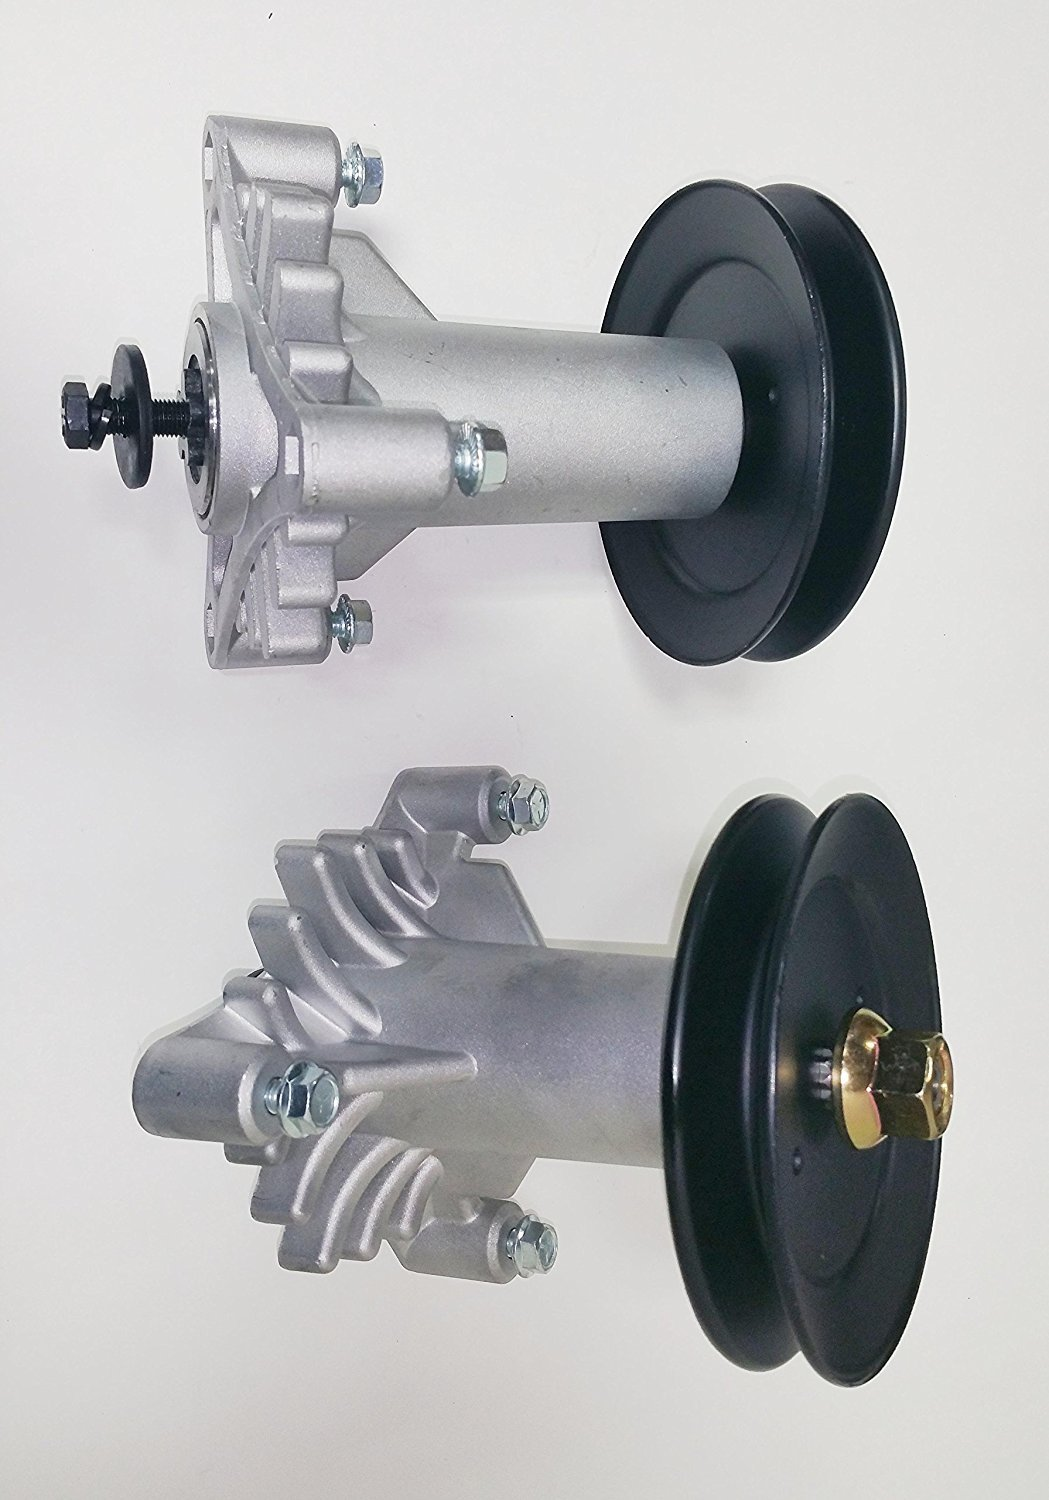 2 Complete Sets Spindle Assembly Replacement for 130794/532130794 with 2 Pulleys Replacement for 129861 153535 173436 and Mounting Bolts in Tapped Holes